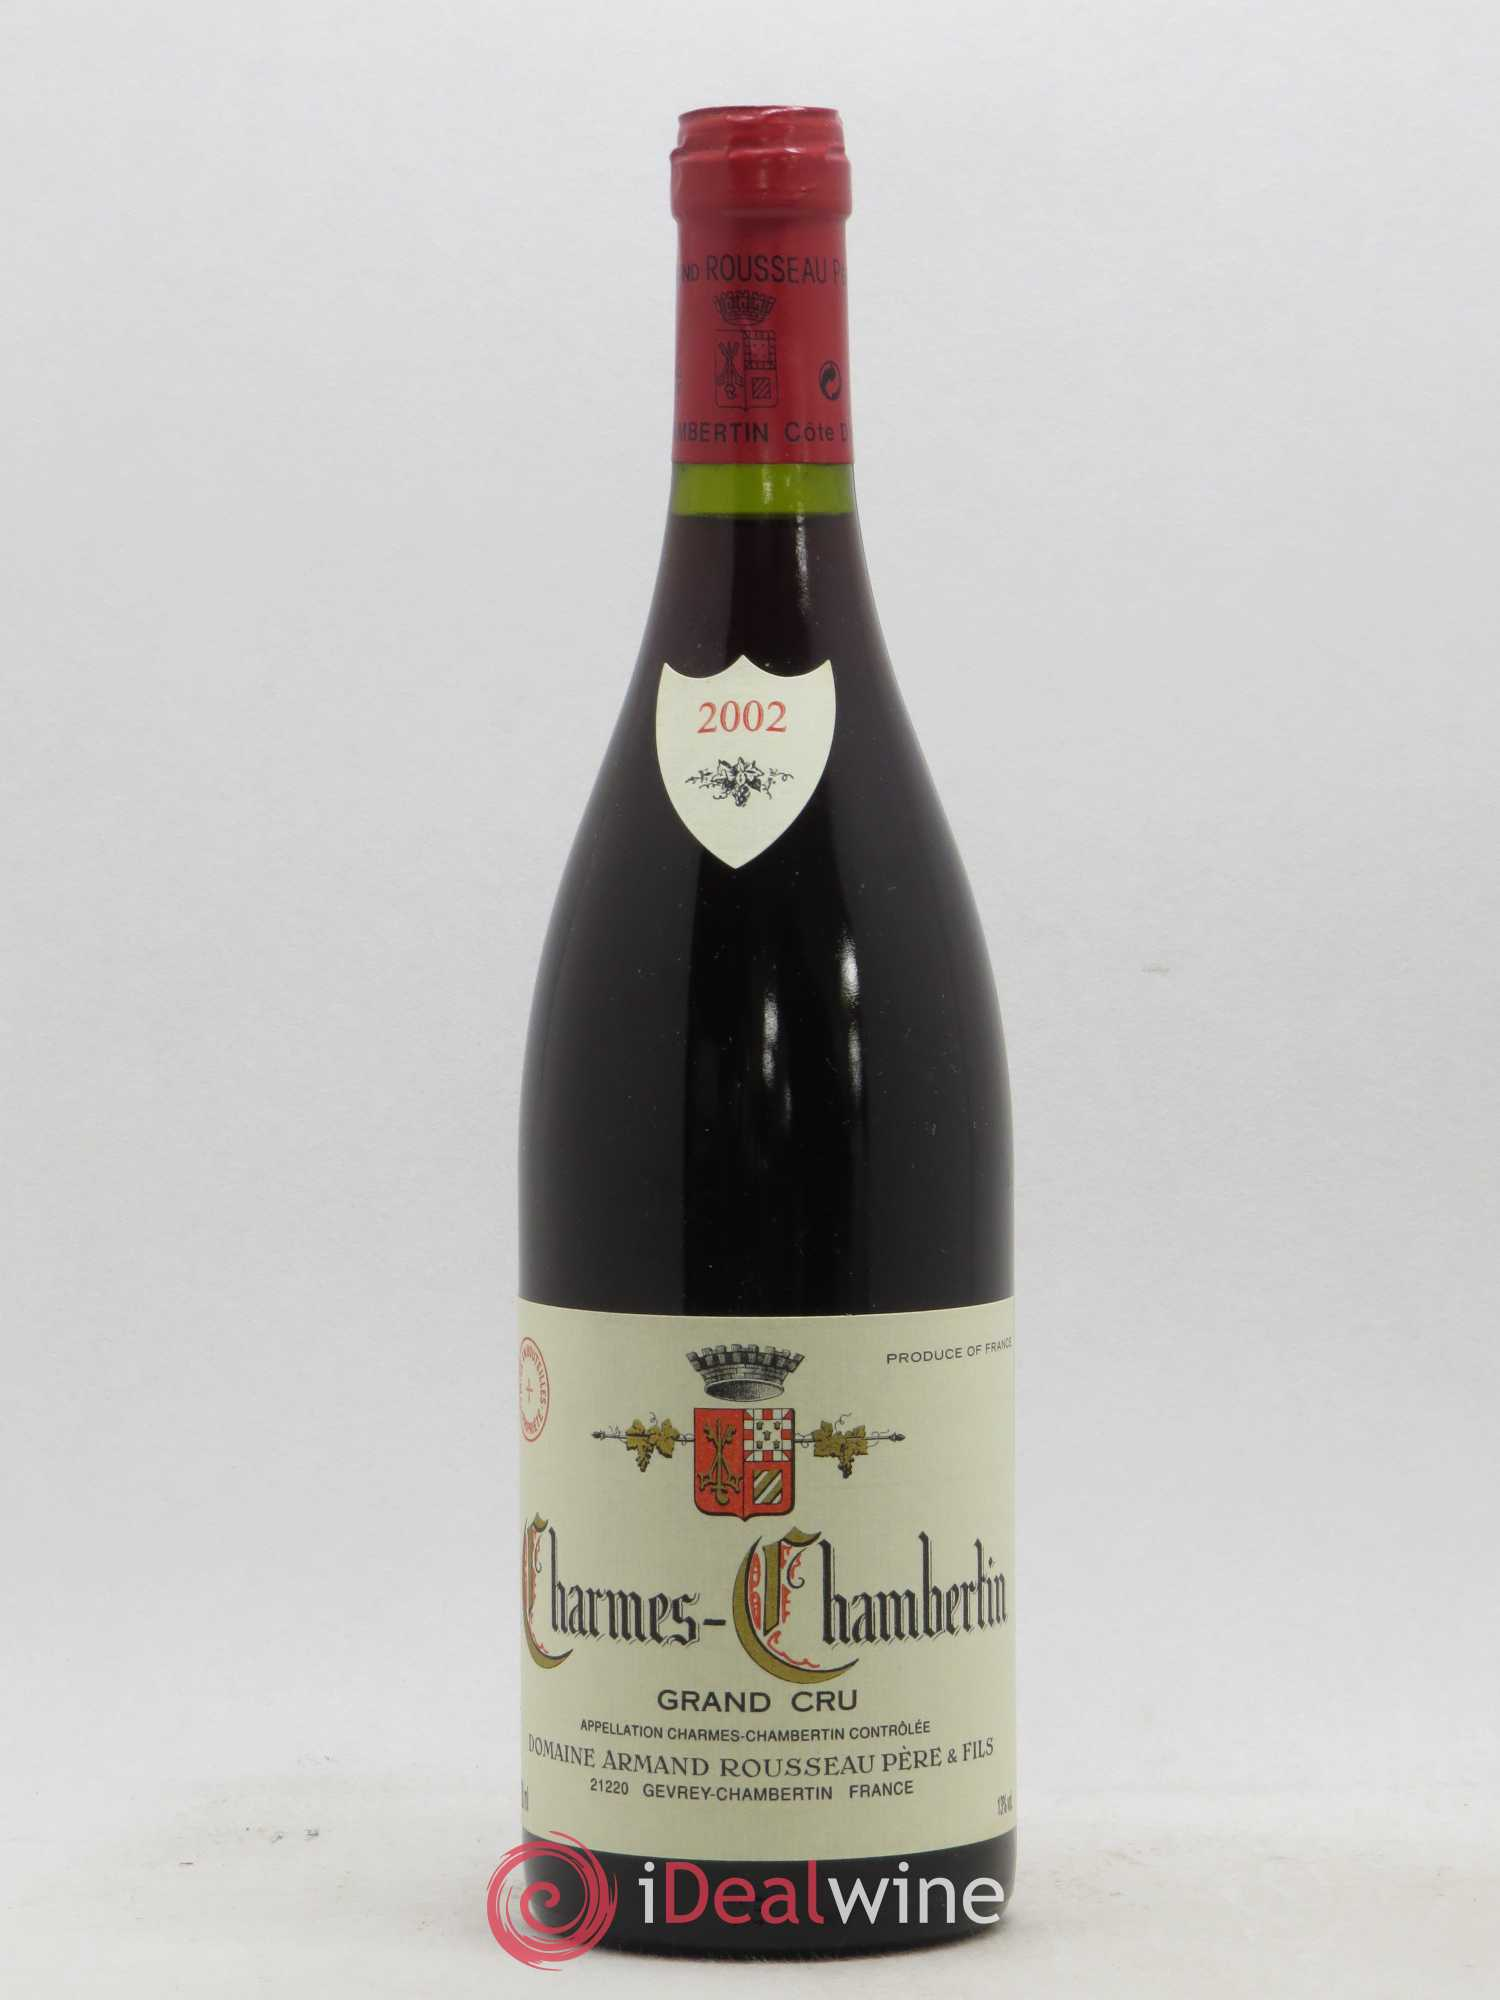 Charmes-Chambertin Grand Cru Armand Rousseau (Domaine)  2002 - Lot of 1 Bottle